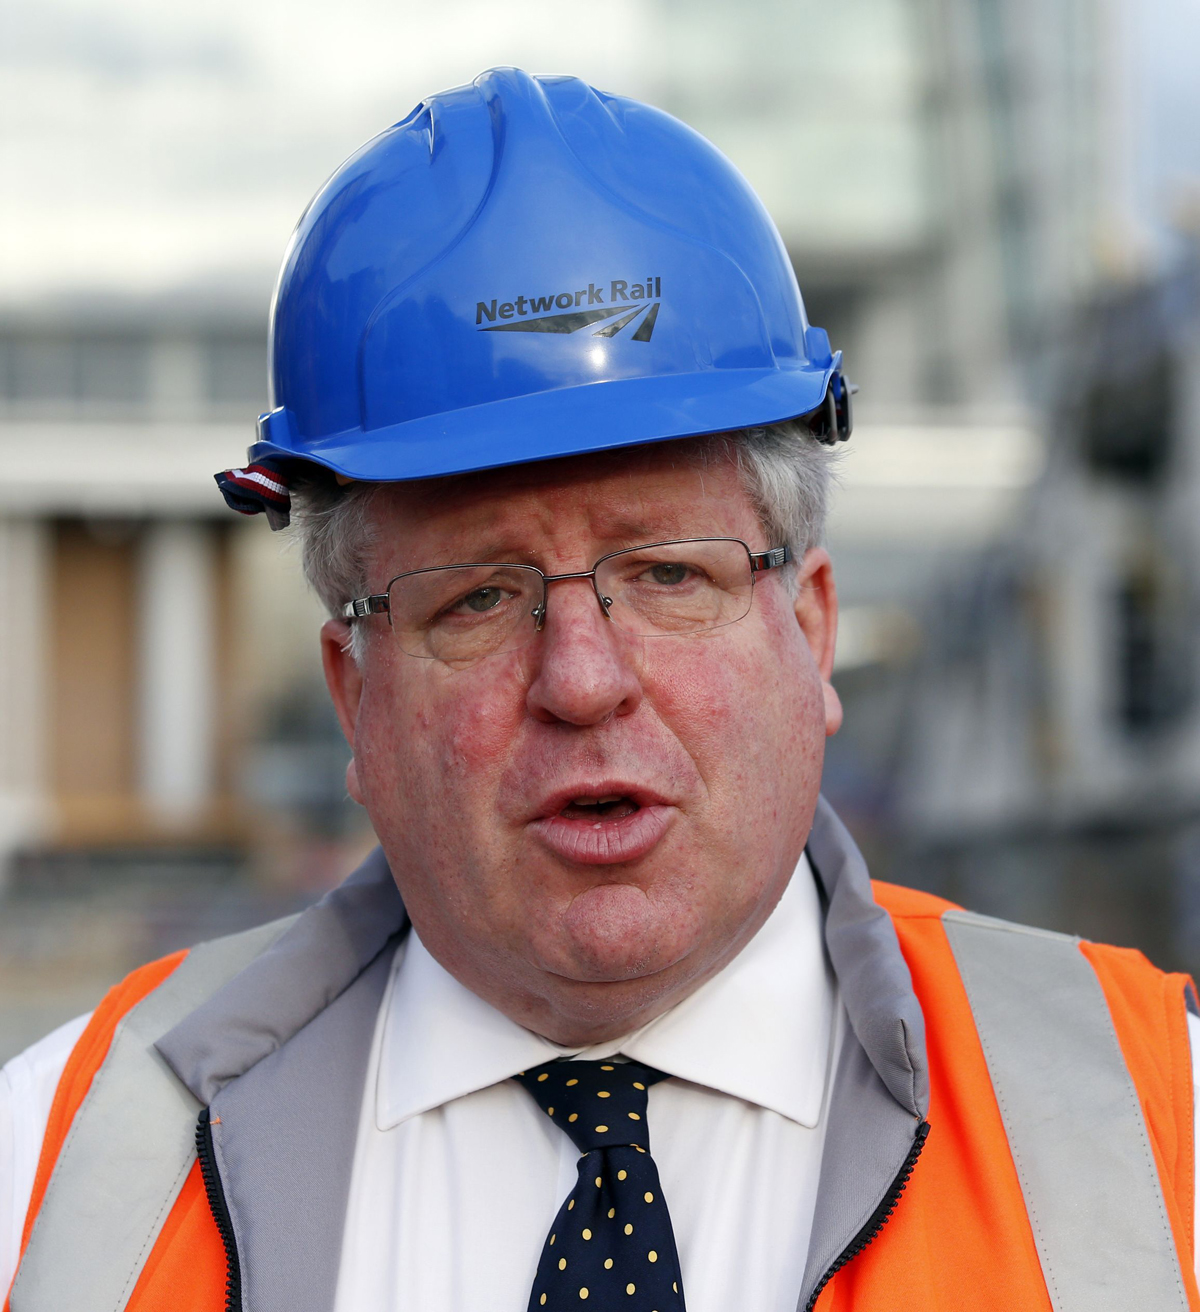 Transport Secretary Patrick McLoughlin